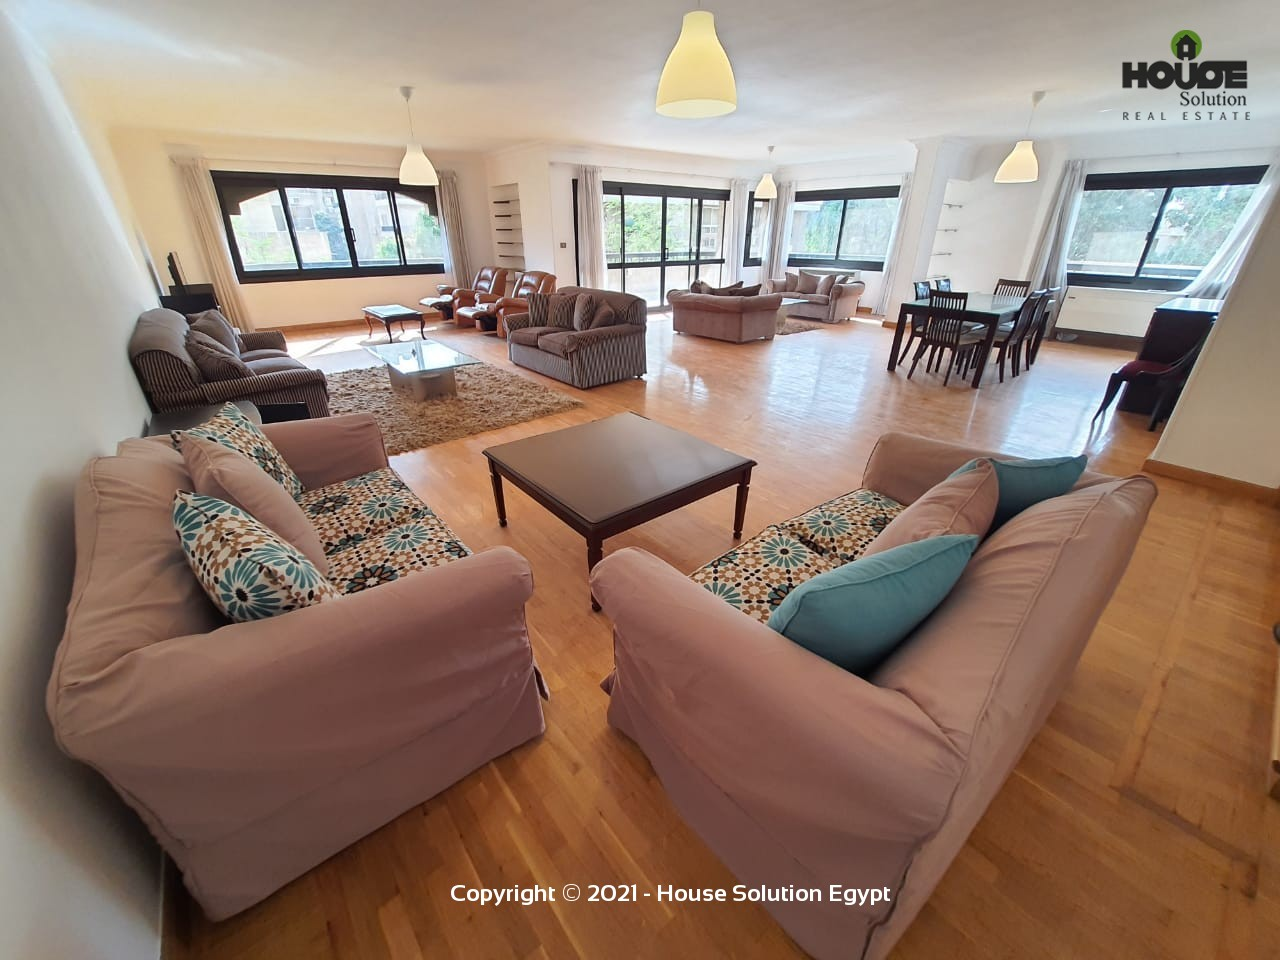 Sunny Spacious Furnished Apartment For Rent In Sarayat El Maadi  - 5023 Featured Image